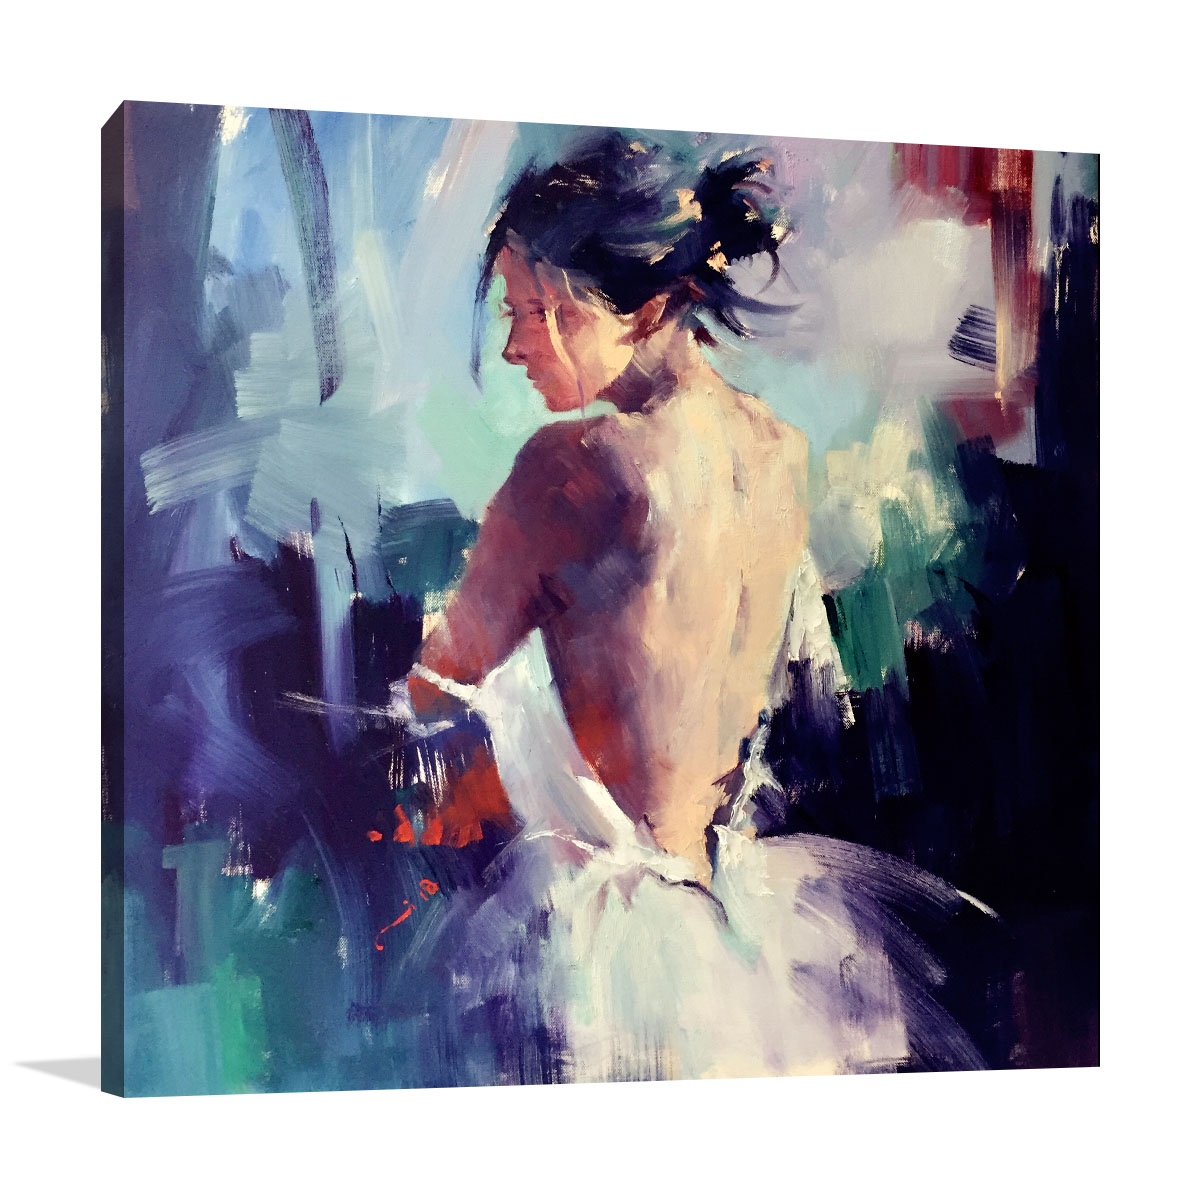 Li Zhou Artwork | The Moment of Silence Painting | Prints on Canvas